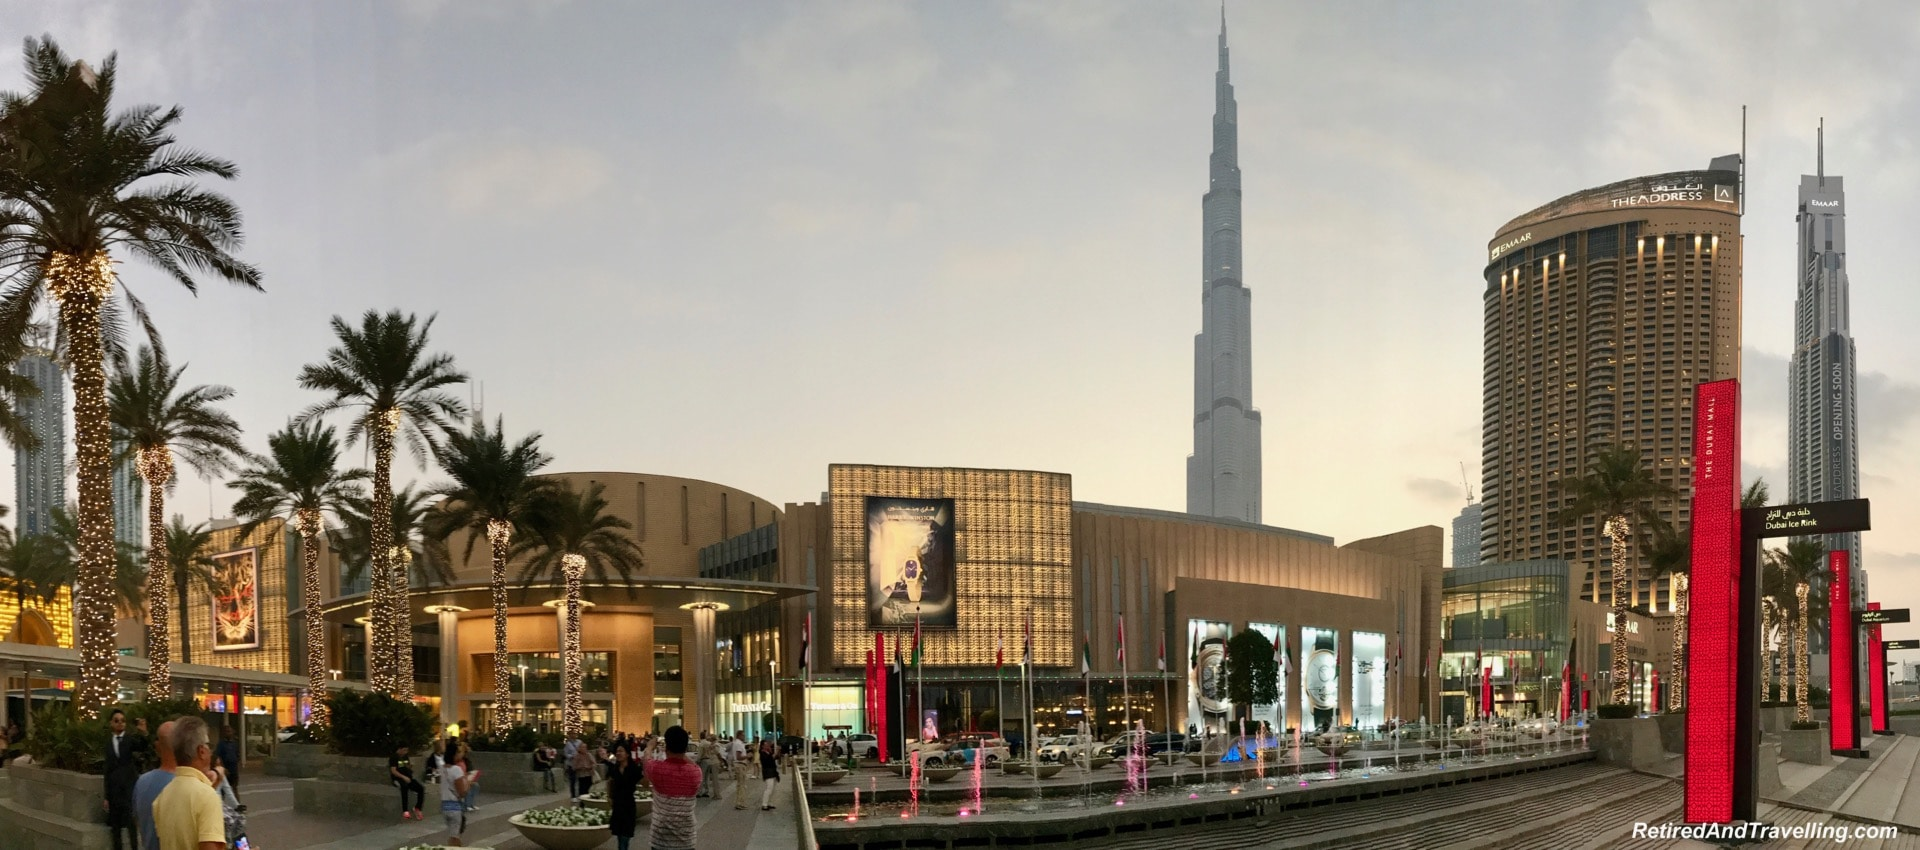 Burj Khalifa - Buidings and Architecture - Things To Do In Dubai.jpg